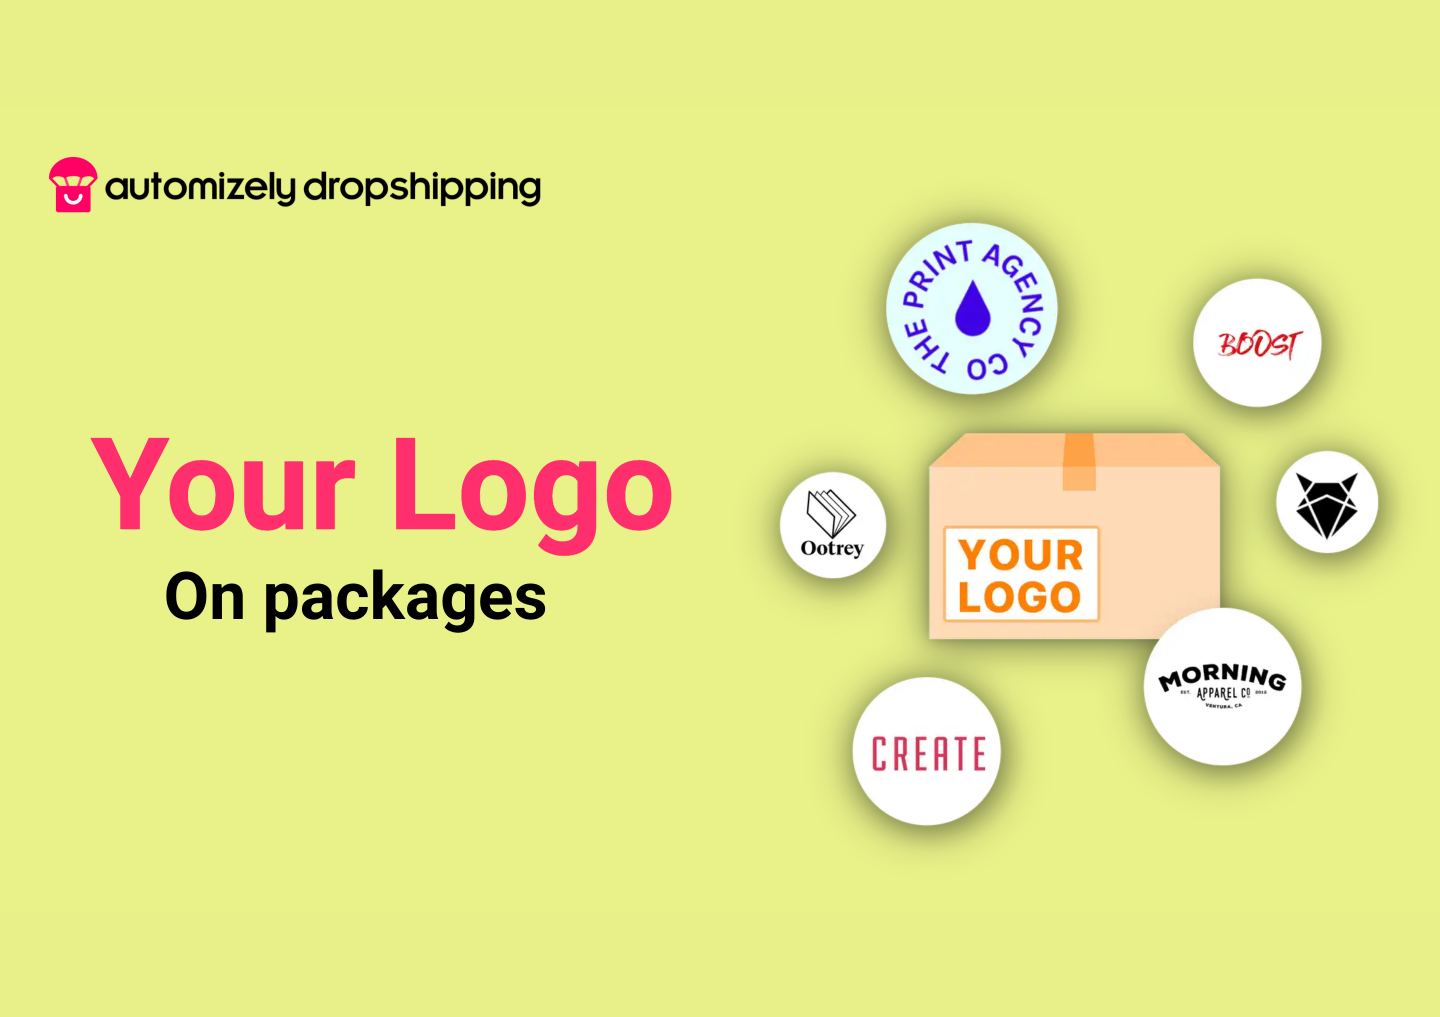 Build your brand image with your logos on order packages.